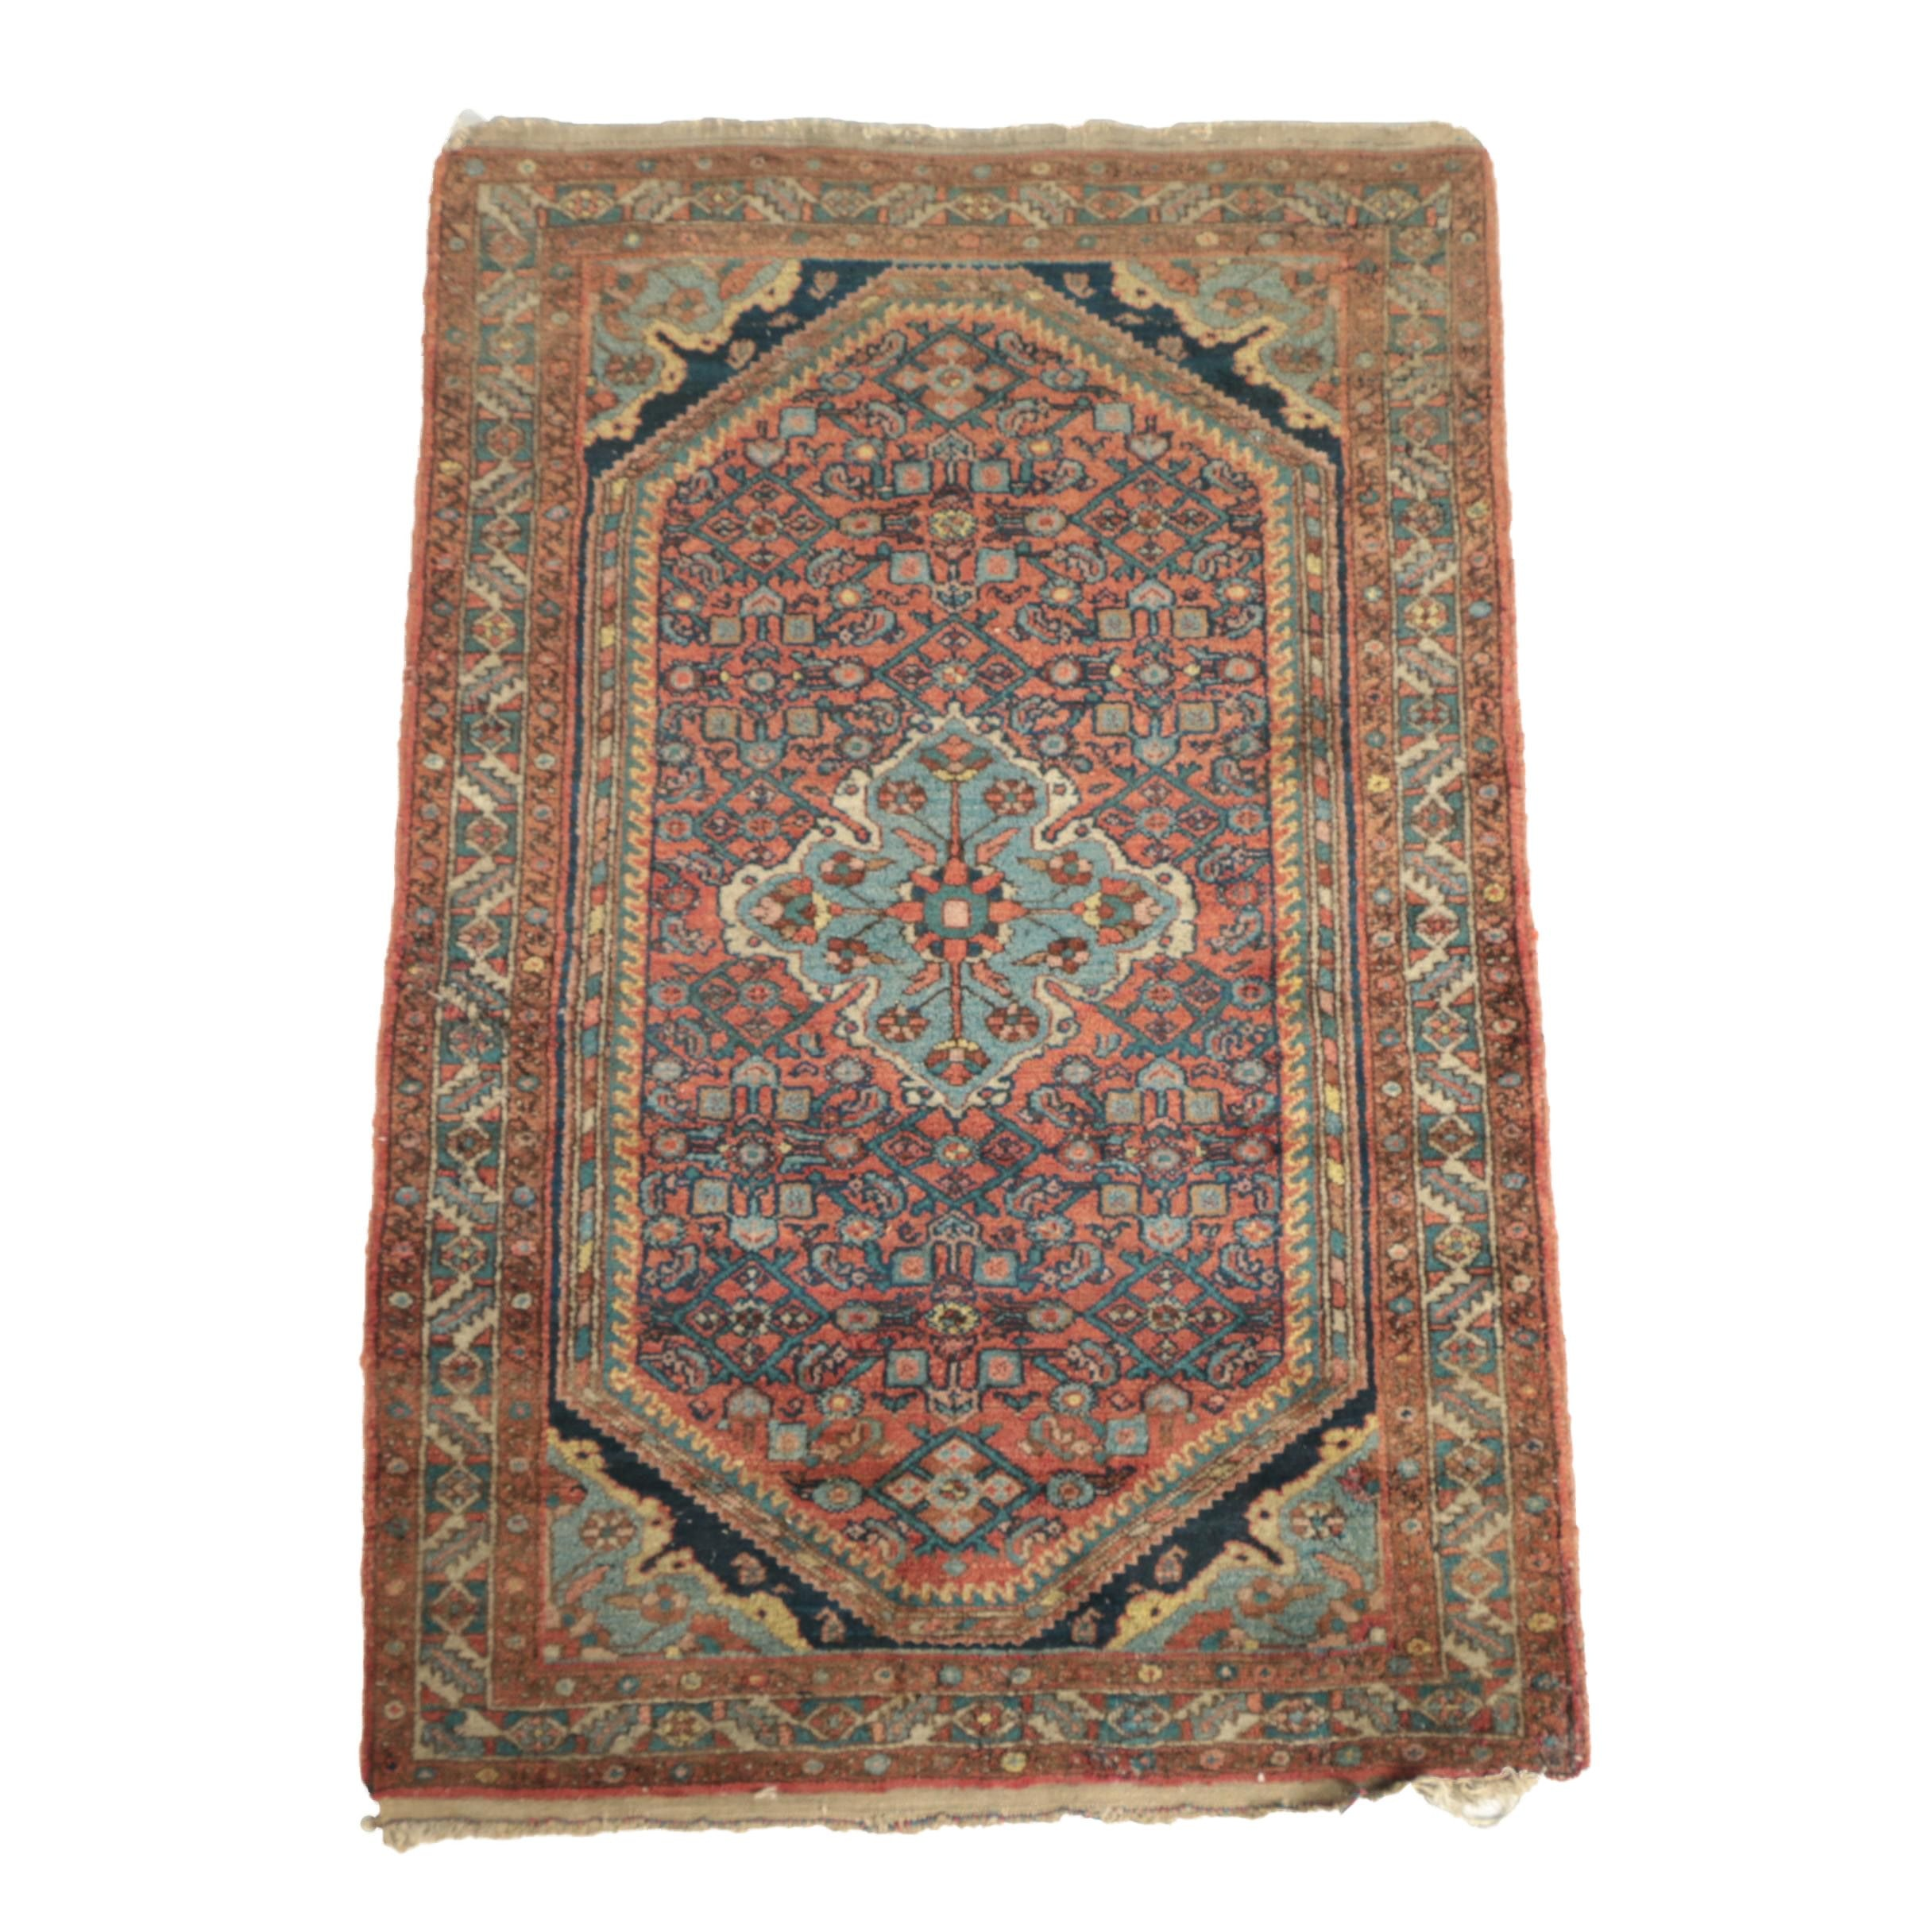 Vintage Hand-Knotted Persian Senneh Wool Accent Rug